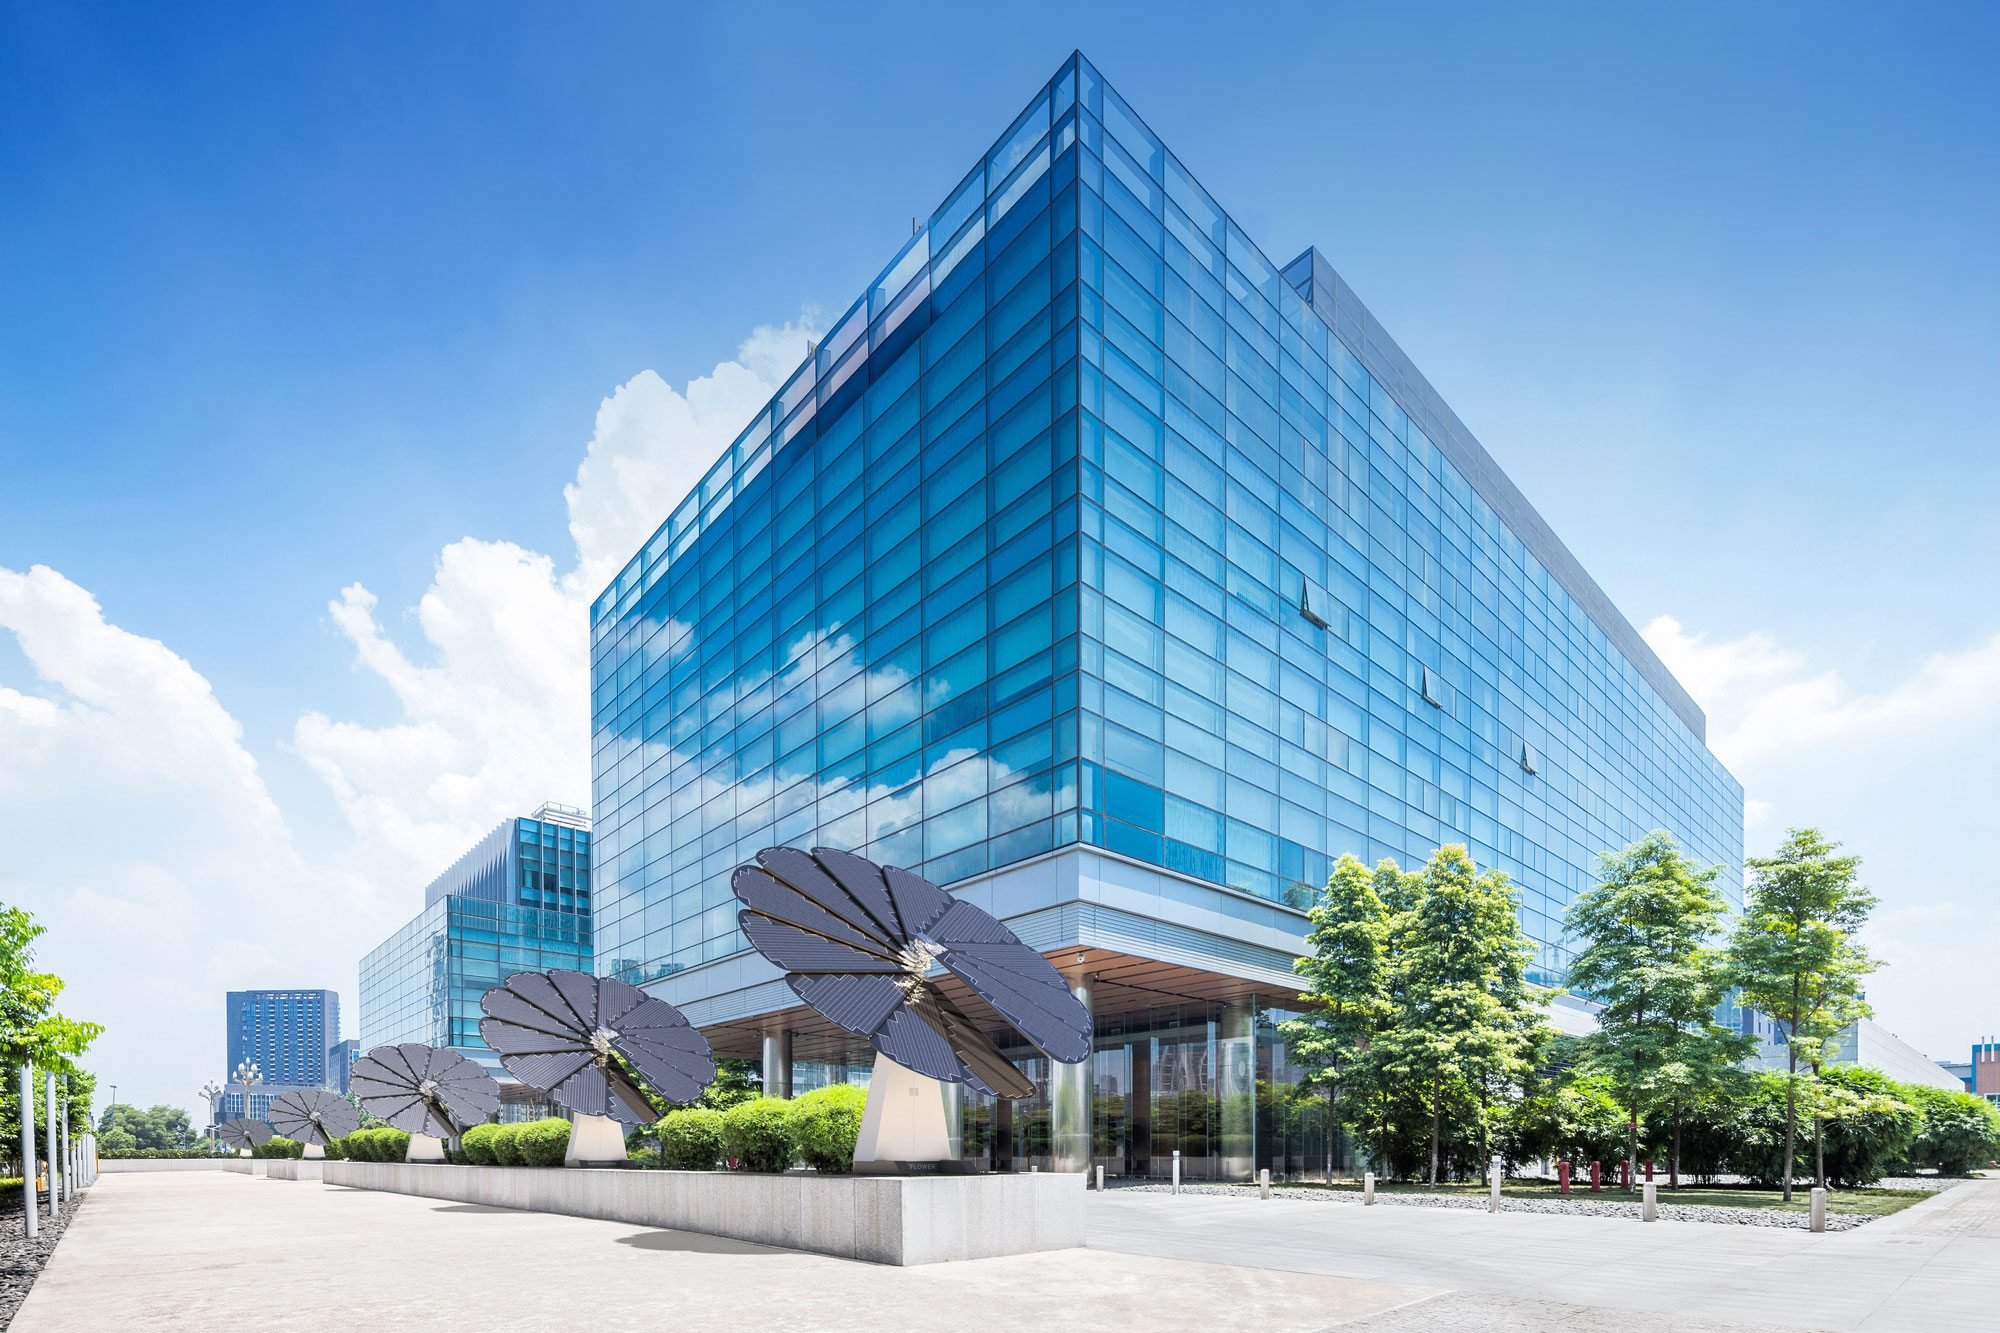 5 SmartFlower Solar Panels Line a City Street Next to a Glass Business Building